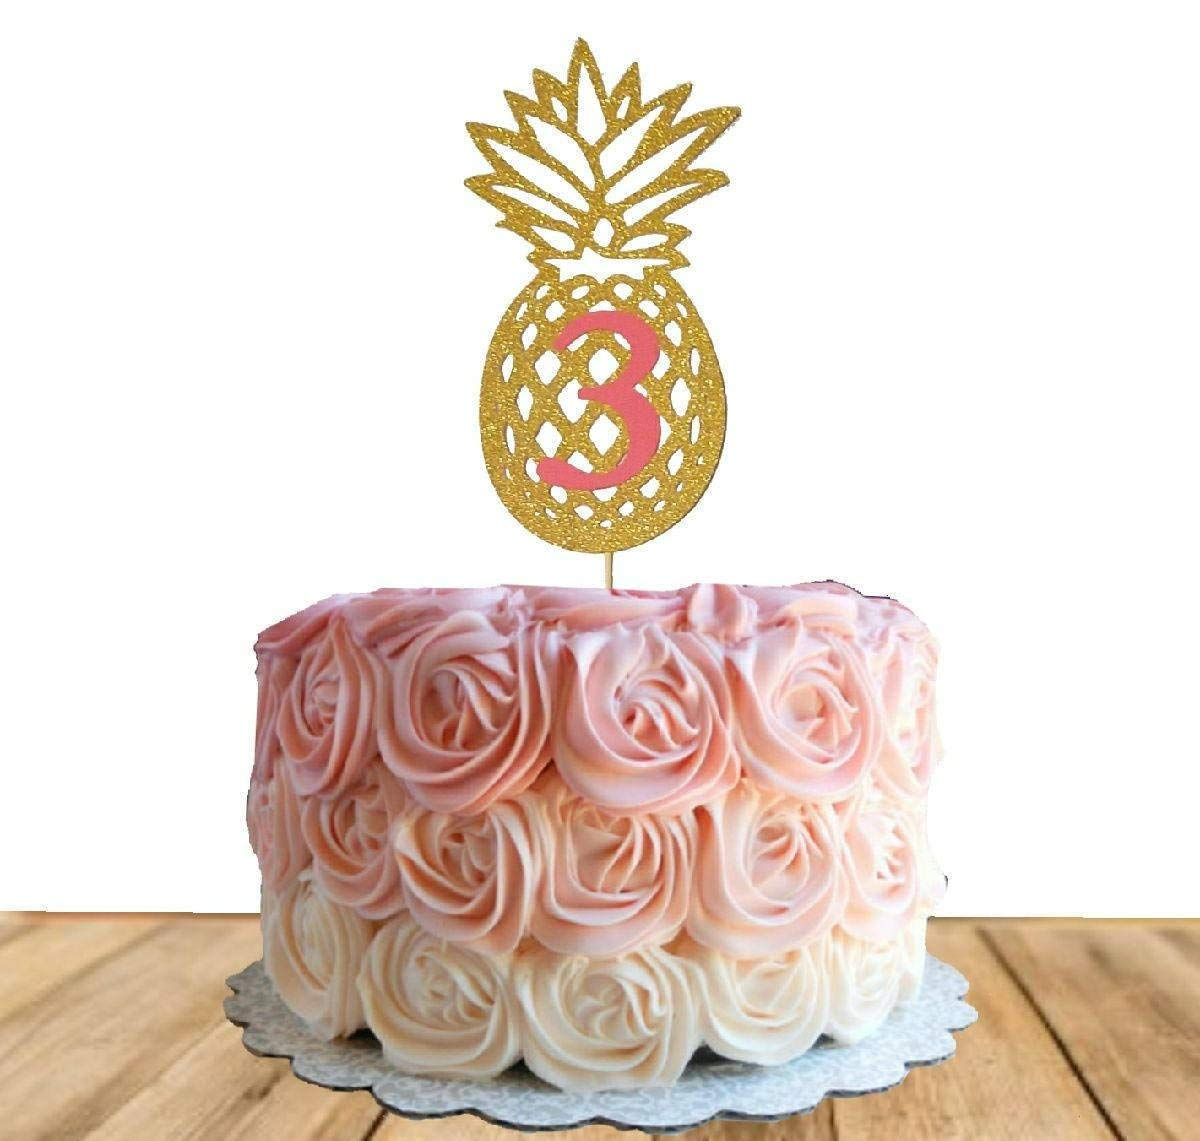 Amazon Com Pineapple With Age Cake Topper Pineapple Cake Topper Birthday Gold Cake Topper Glitter Cake Topper Custom With Age Tropical Flamingo Customised Handmade